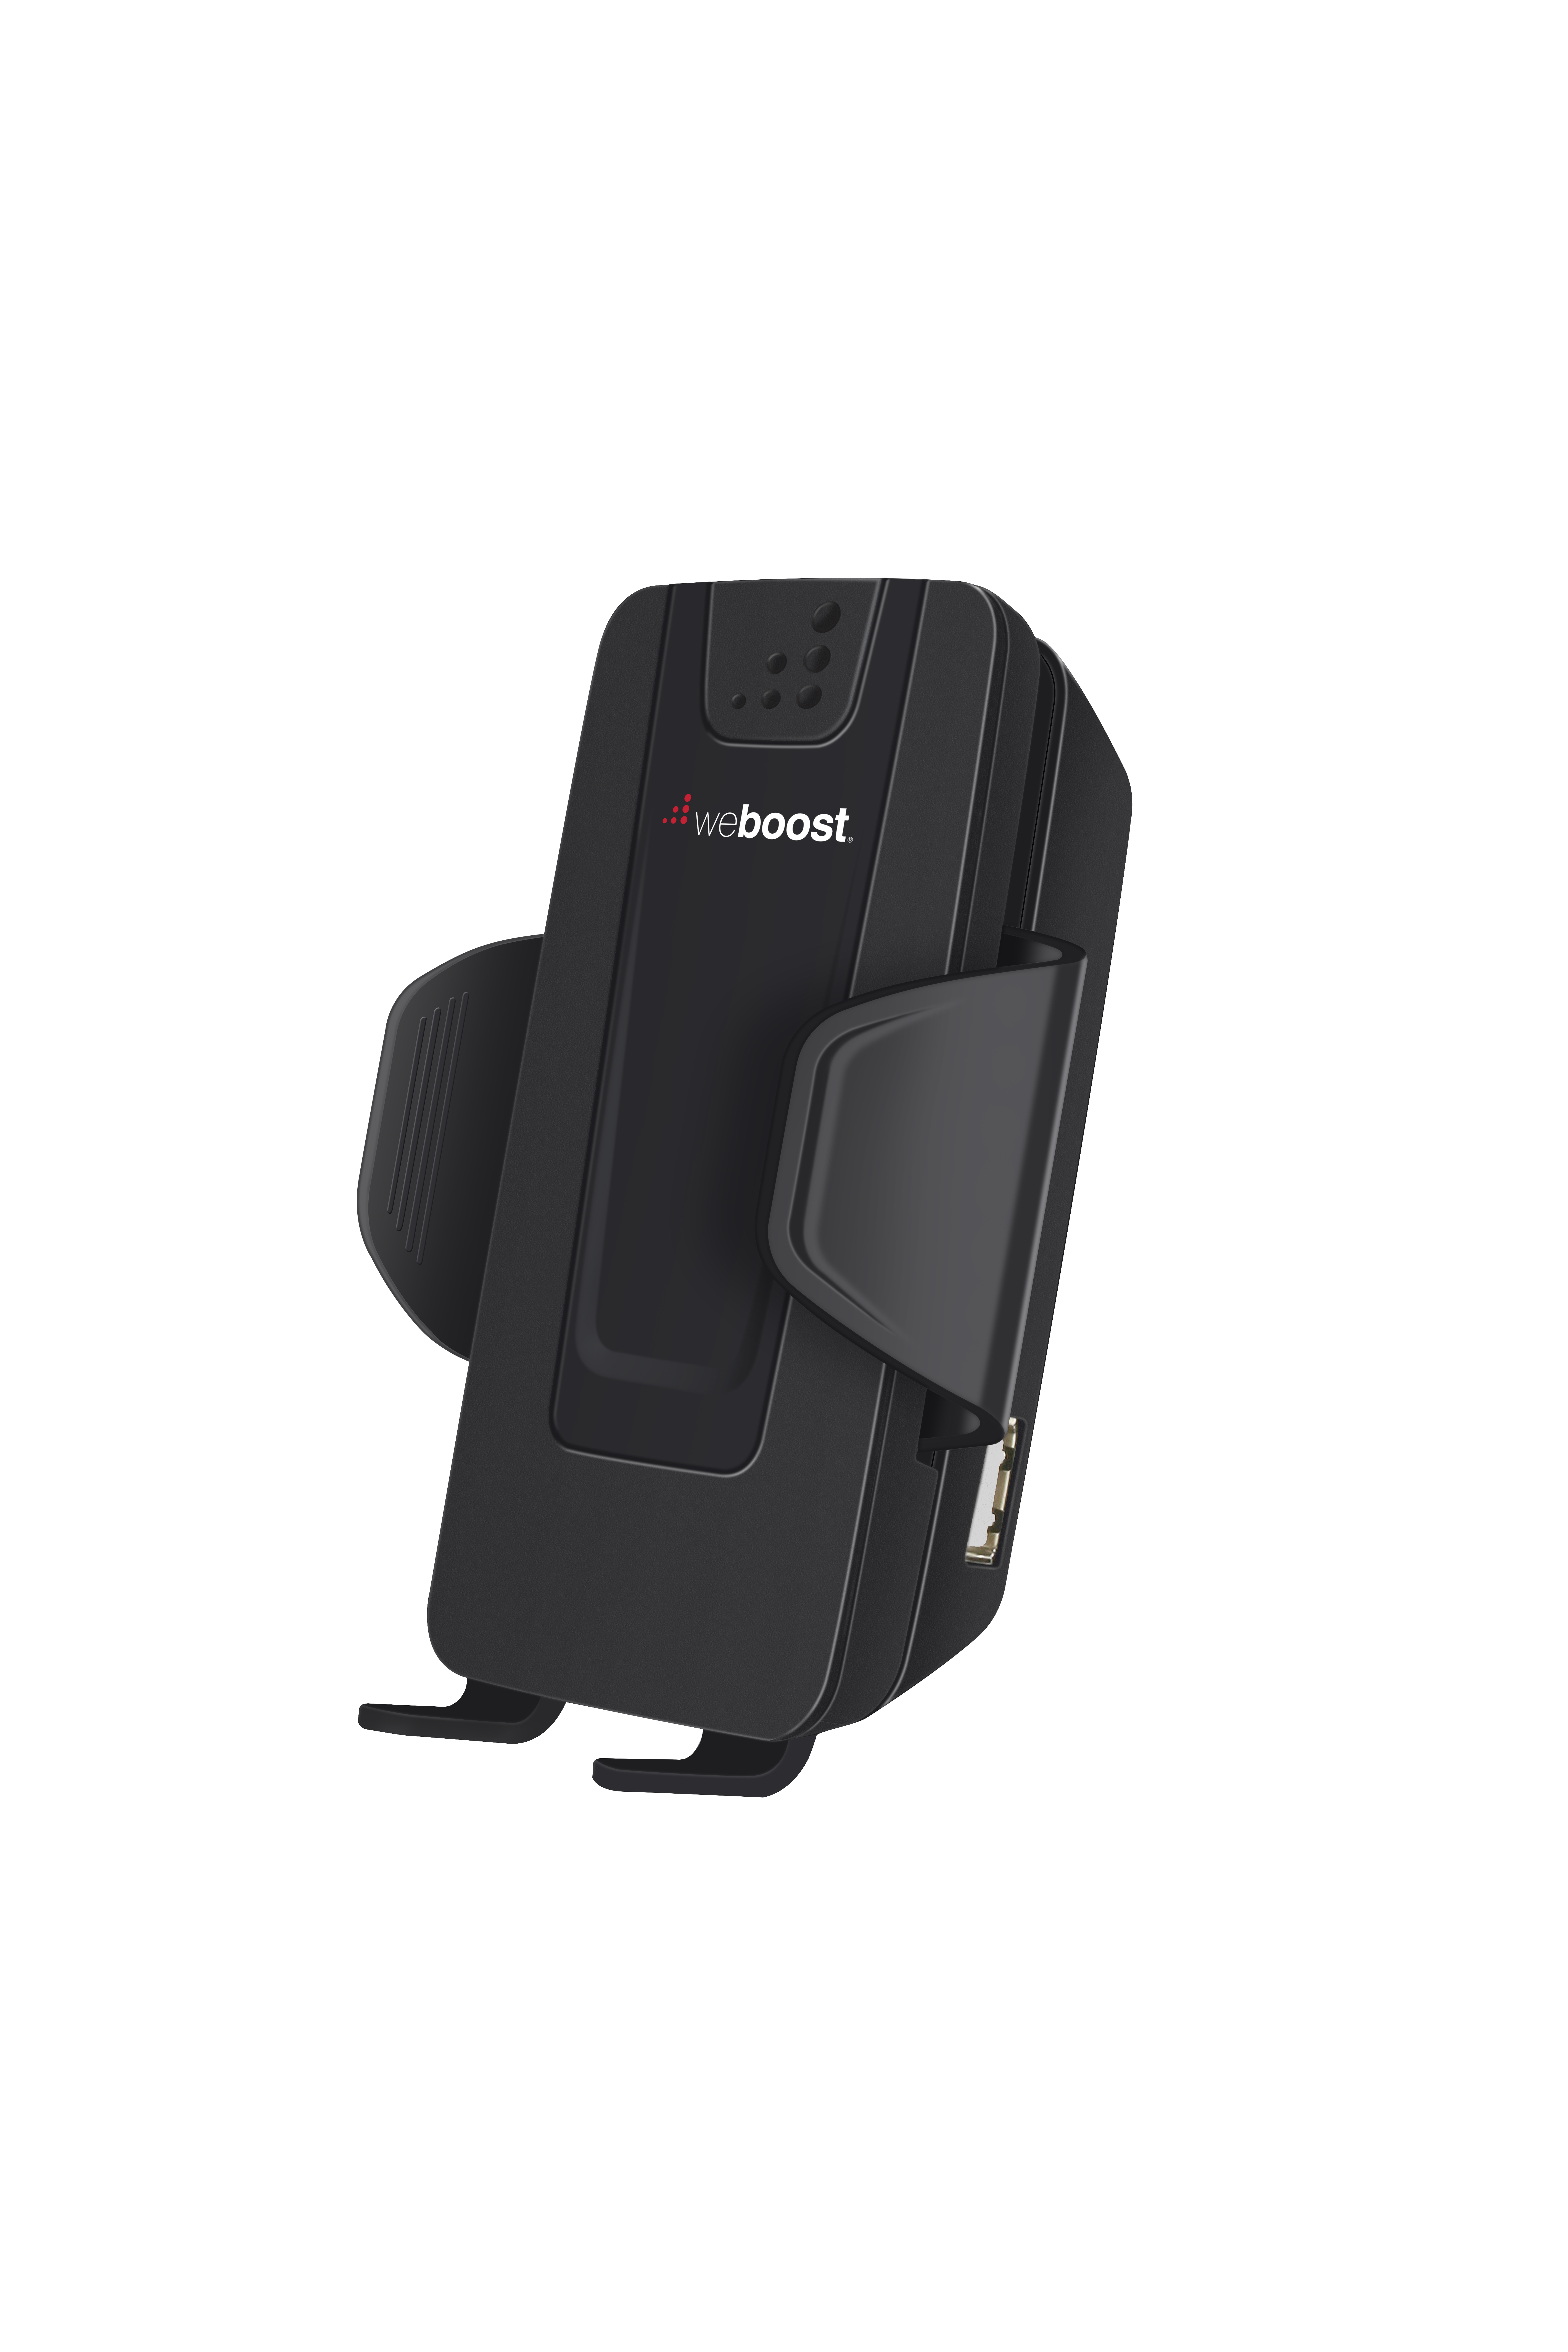 Wilson Weboost Drive 4g S 470107 Cradle Booster For Car